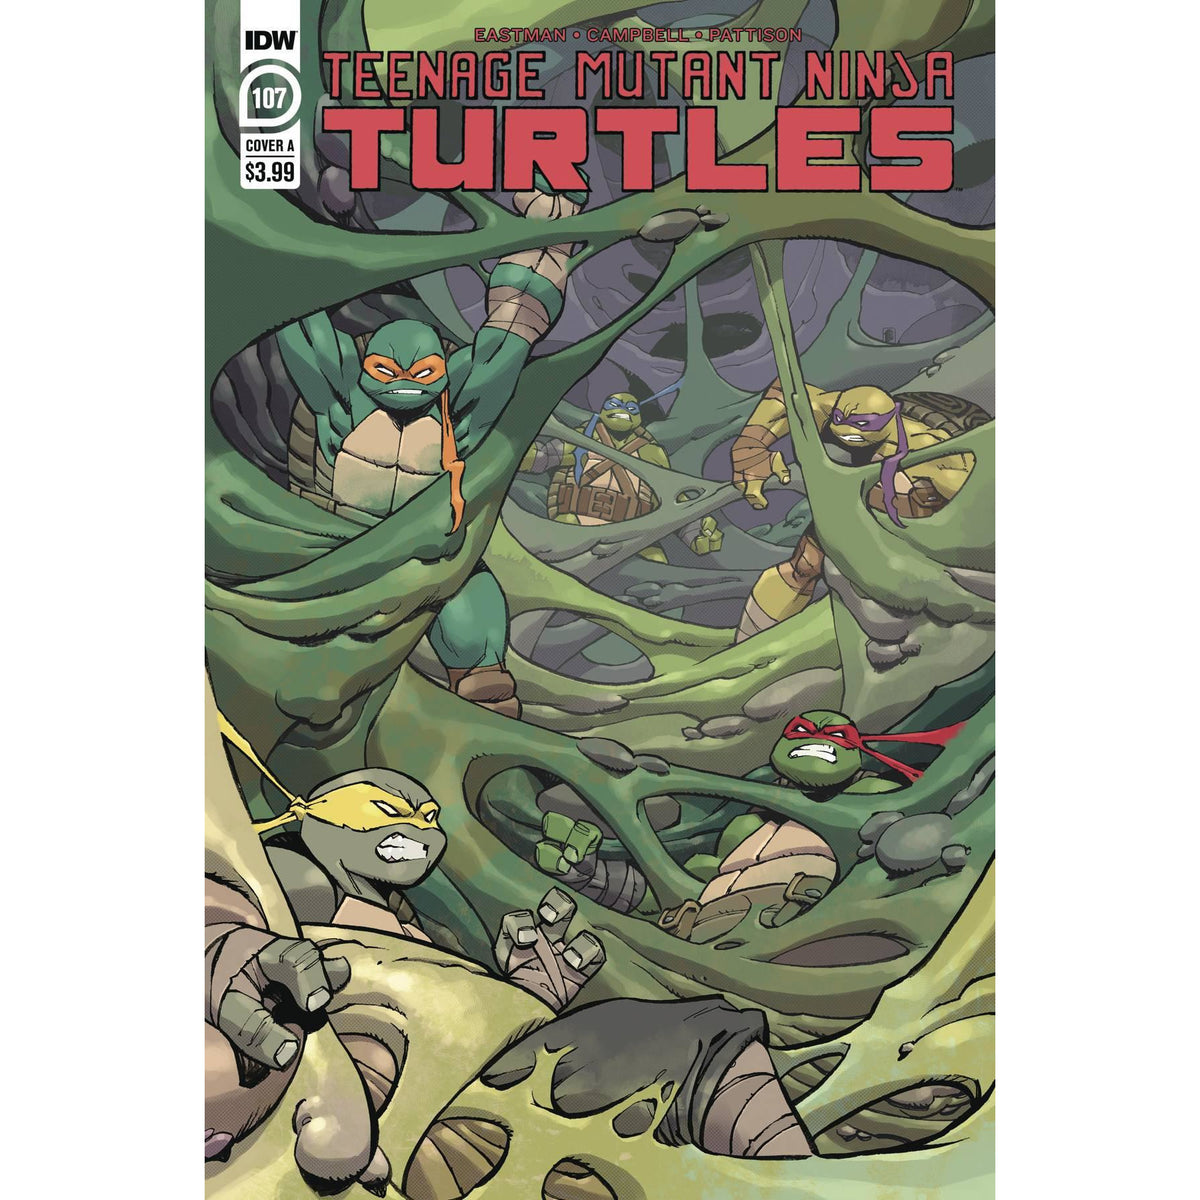 TMNT ONGOING #107 - DANIEL COVER A